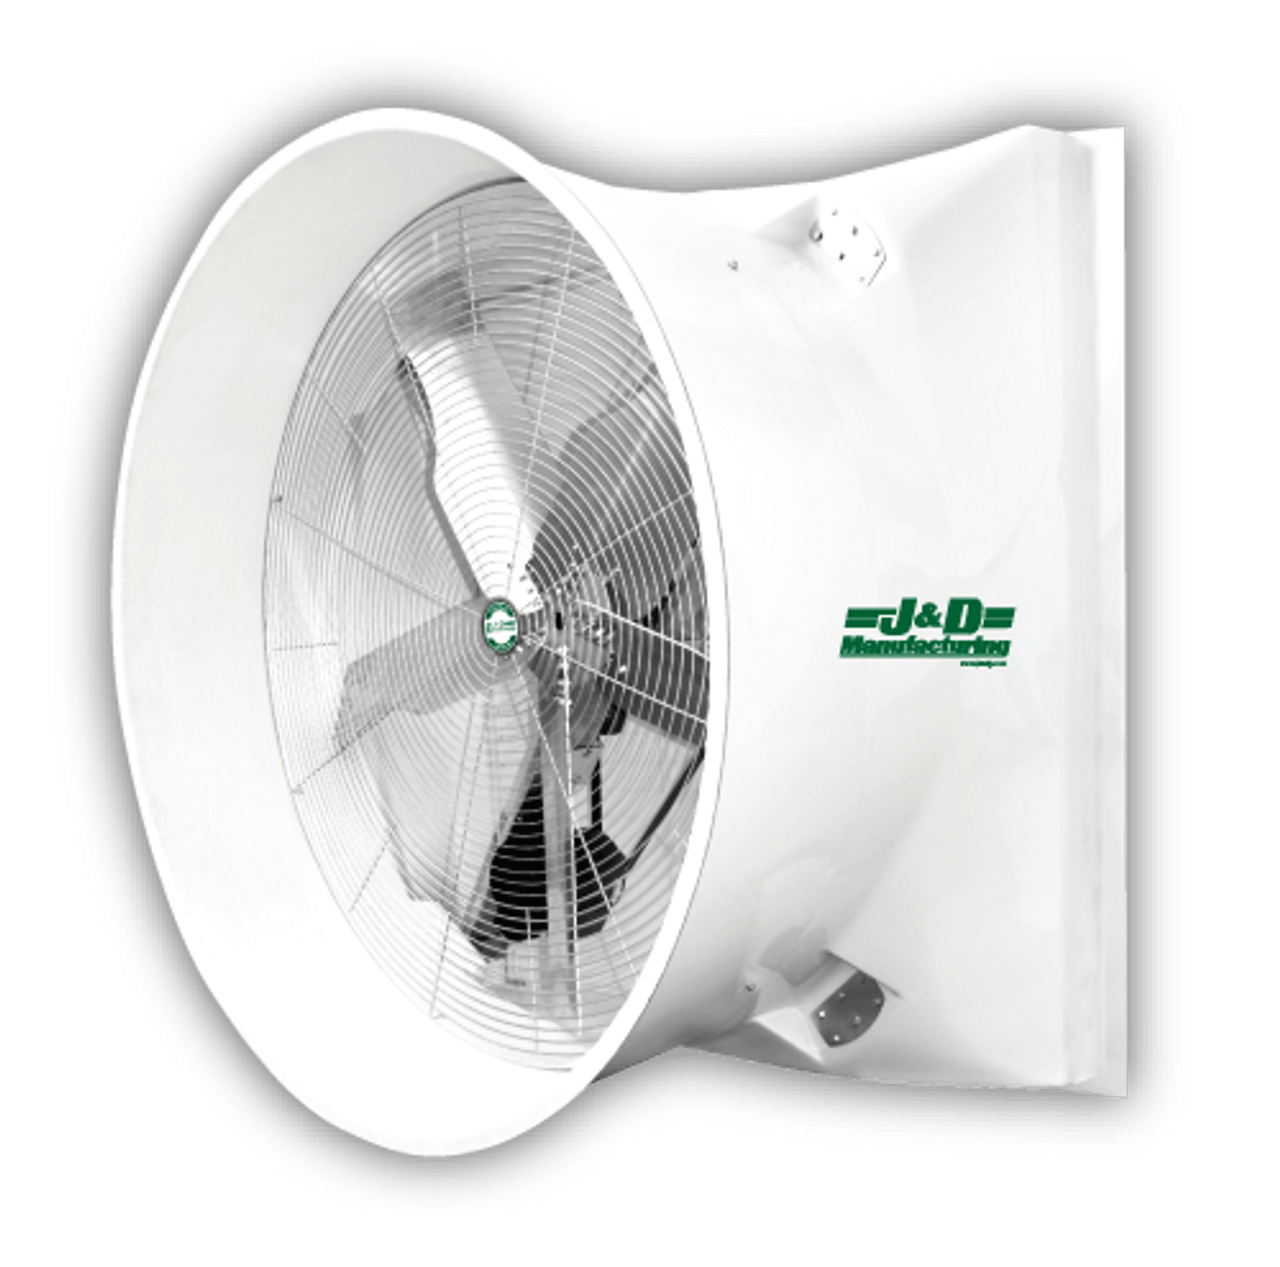 a2 j d mega storm 72 exhaust fan with cone and out up to 46 448 cfm 05 sp 3 hp single 3 ph 115 230v 230 460v multiple models